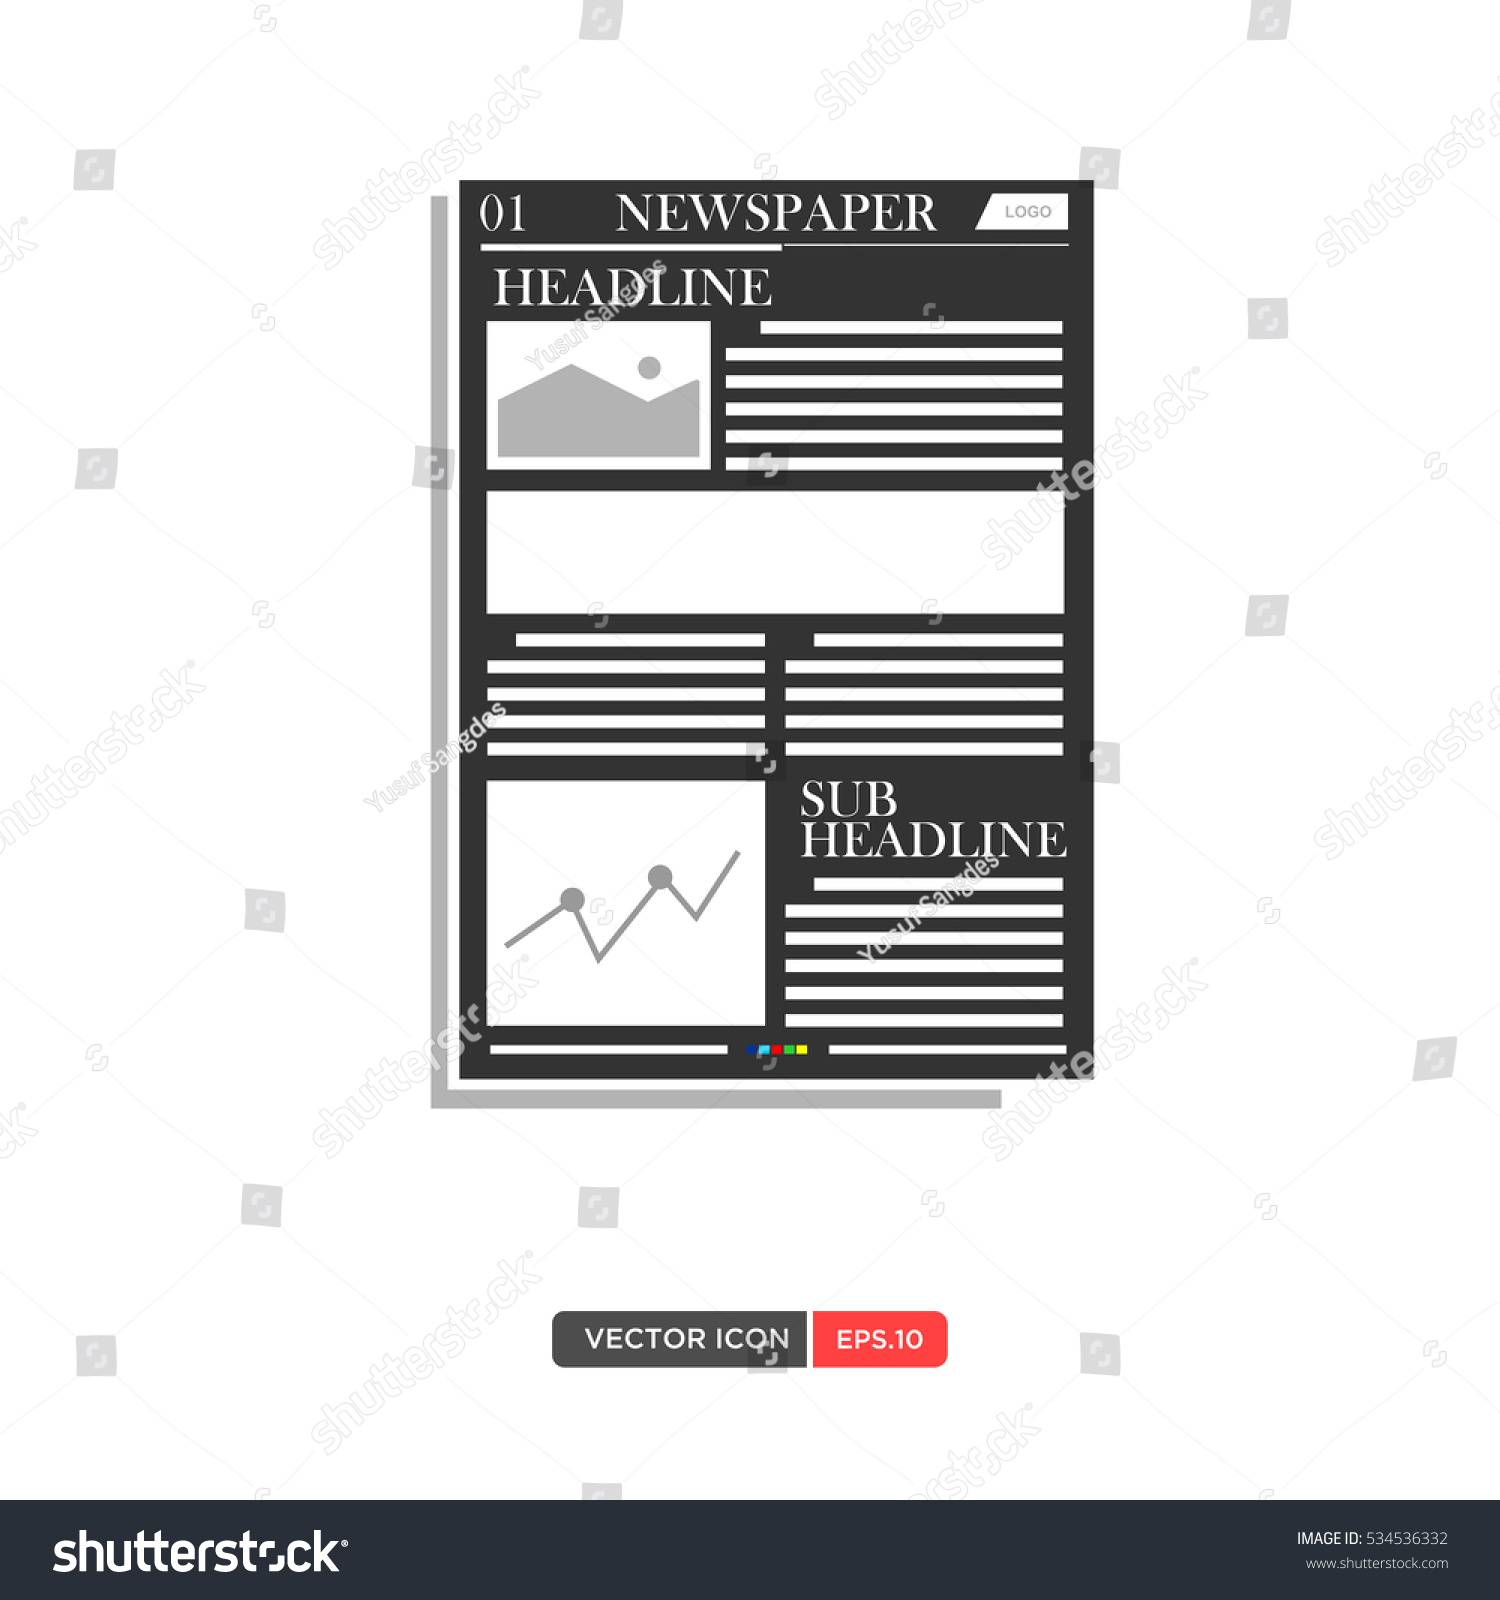 Newspaper Layout Template Icon Vector Illustration Eps.10